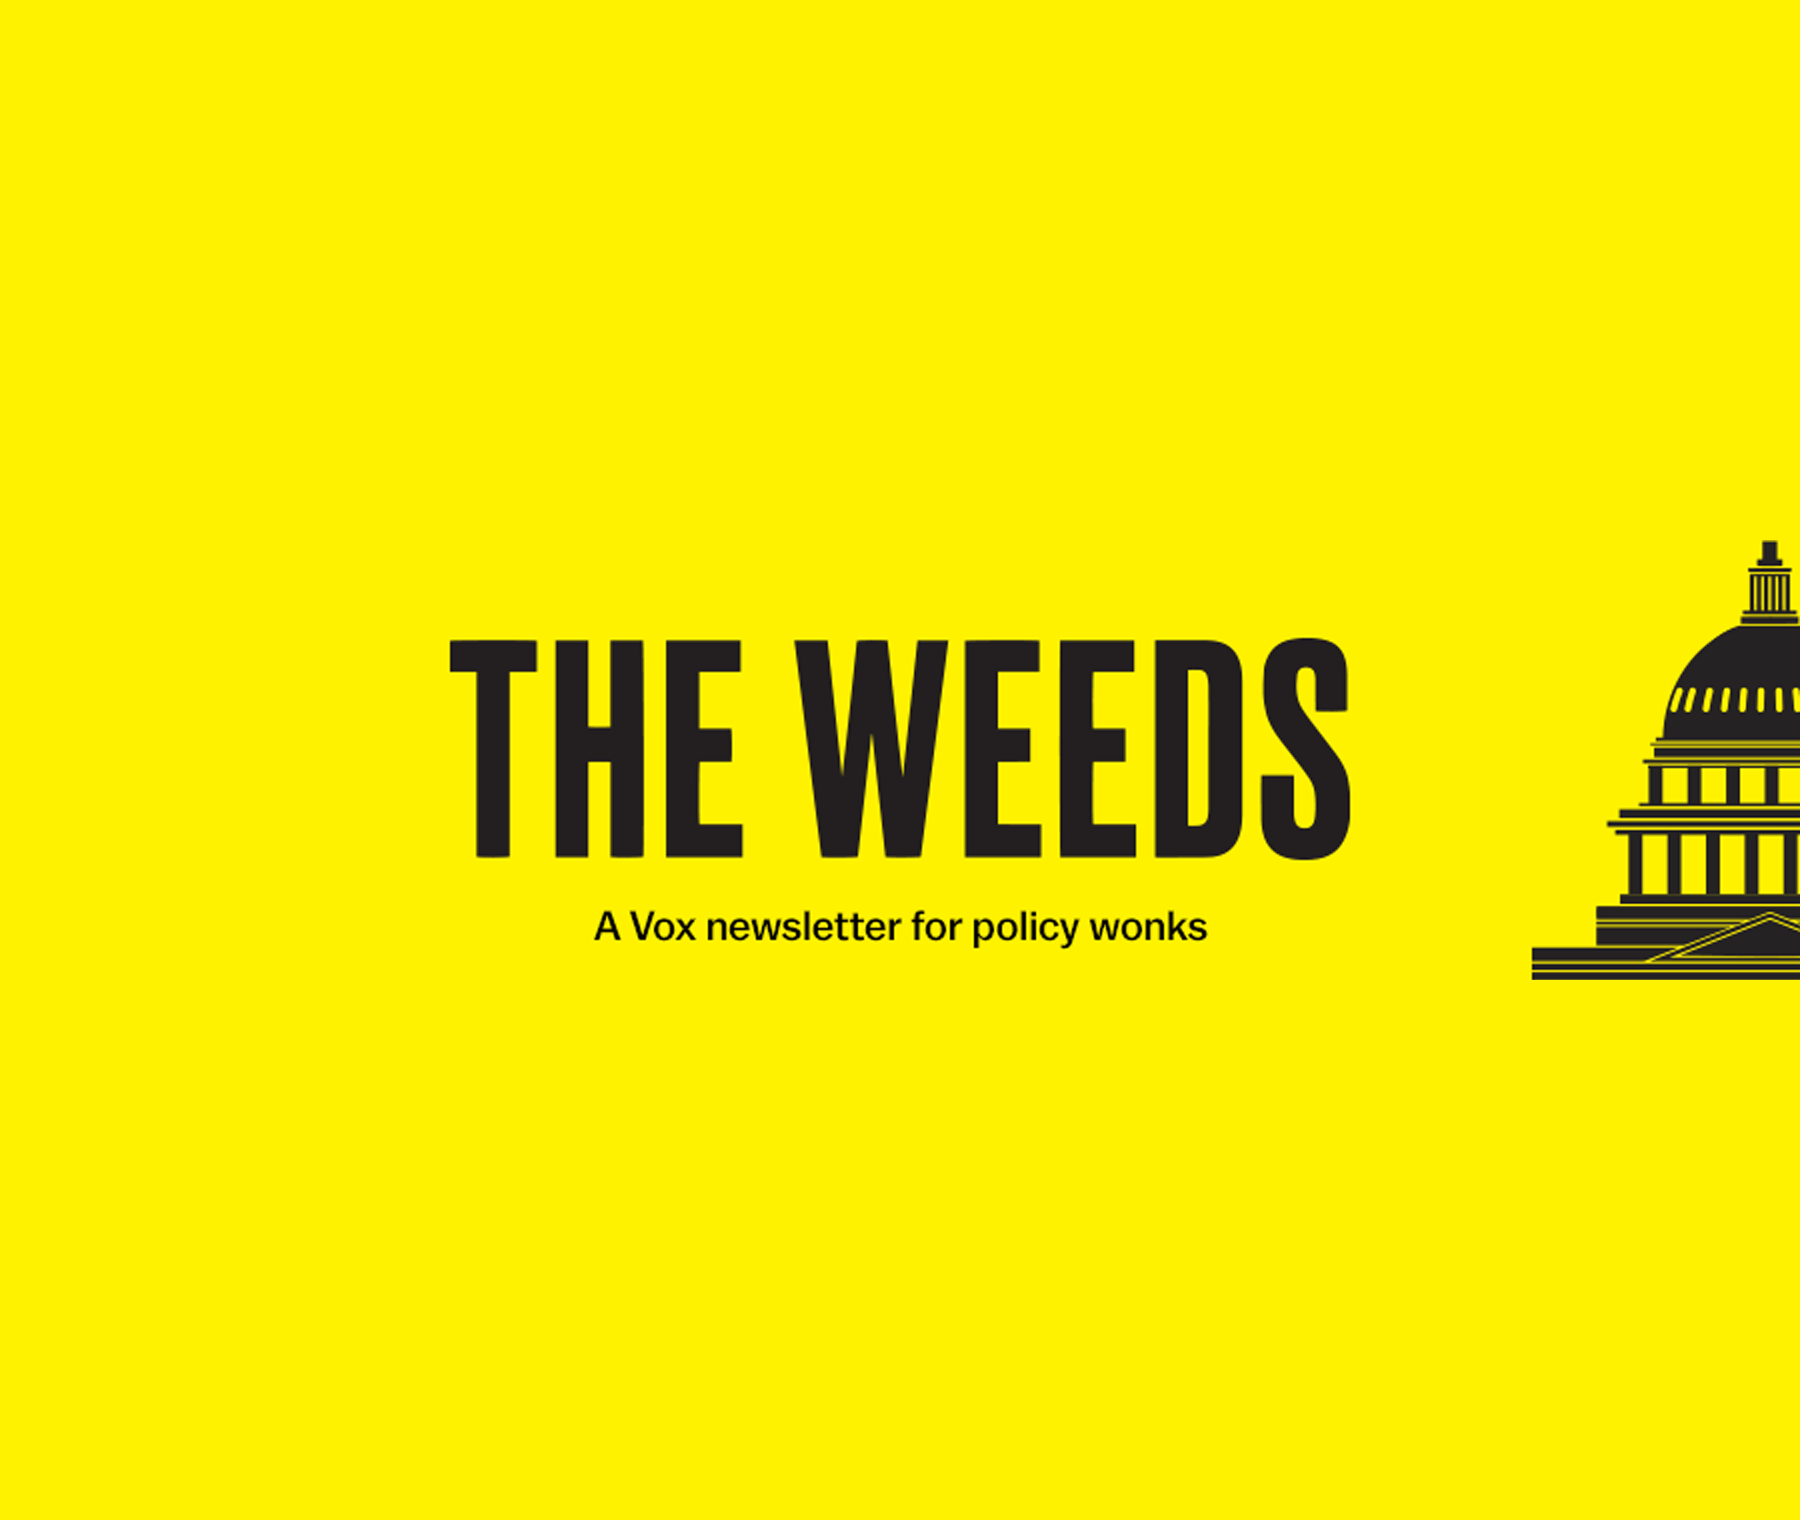 The Weeds newsletter logo